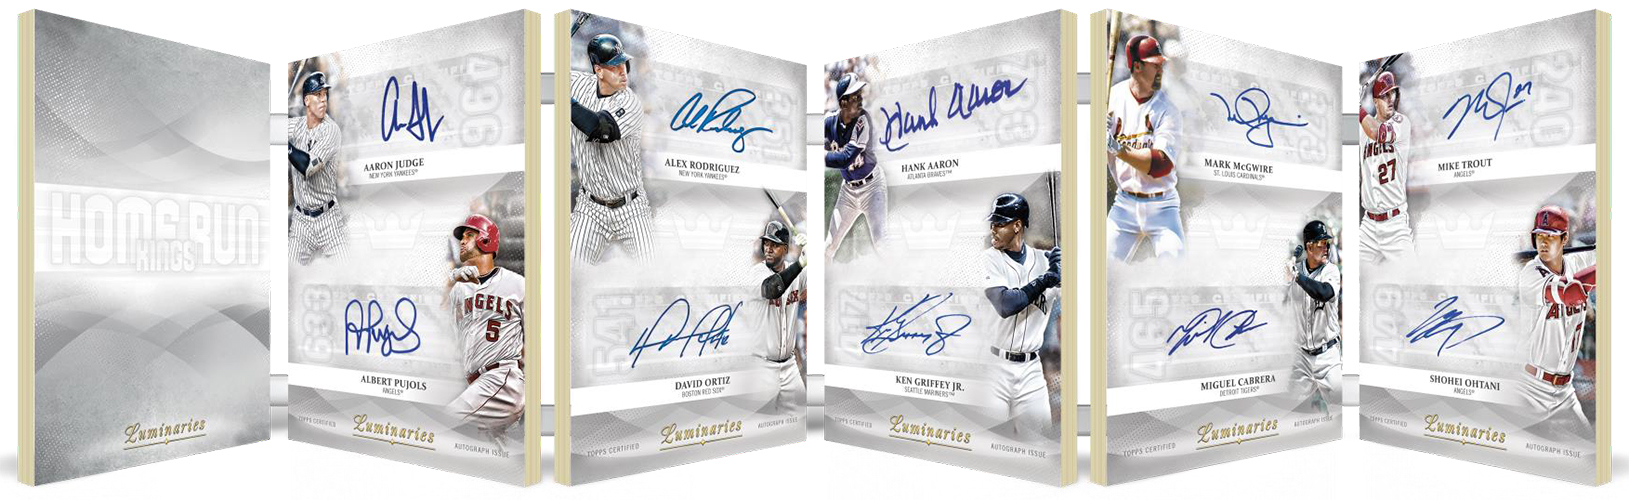 2019 Topps Luminaries Baseball Home Run Kings Ultra Book Card